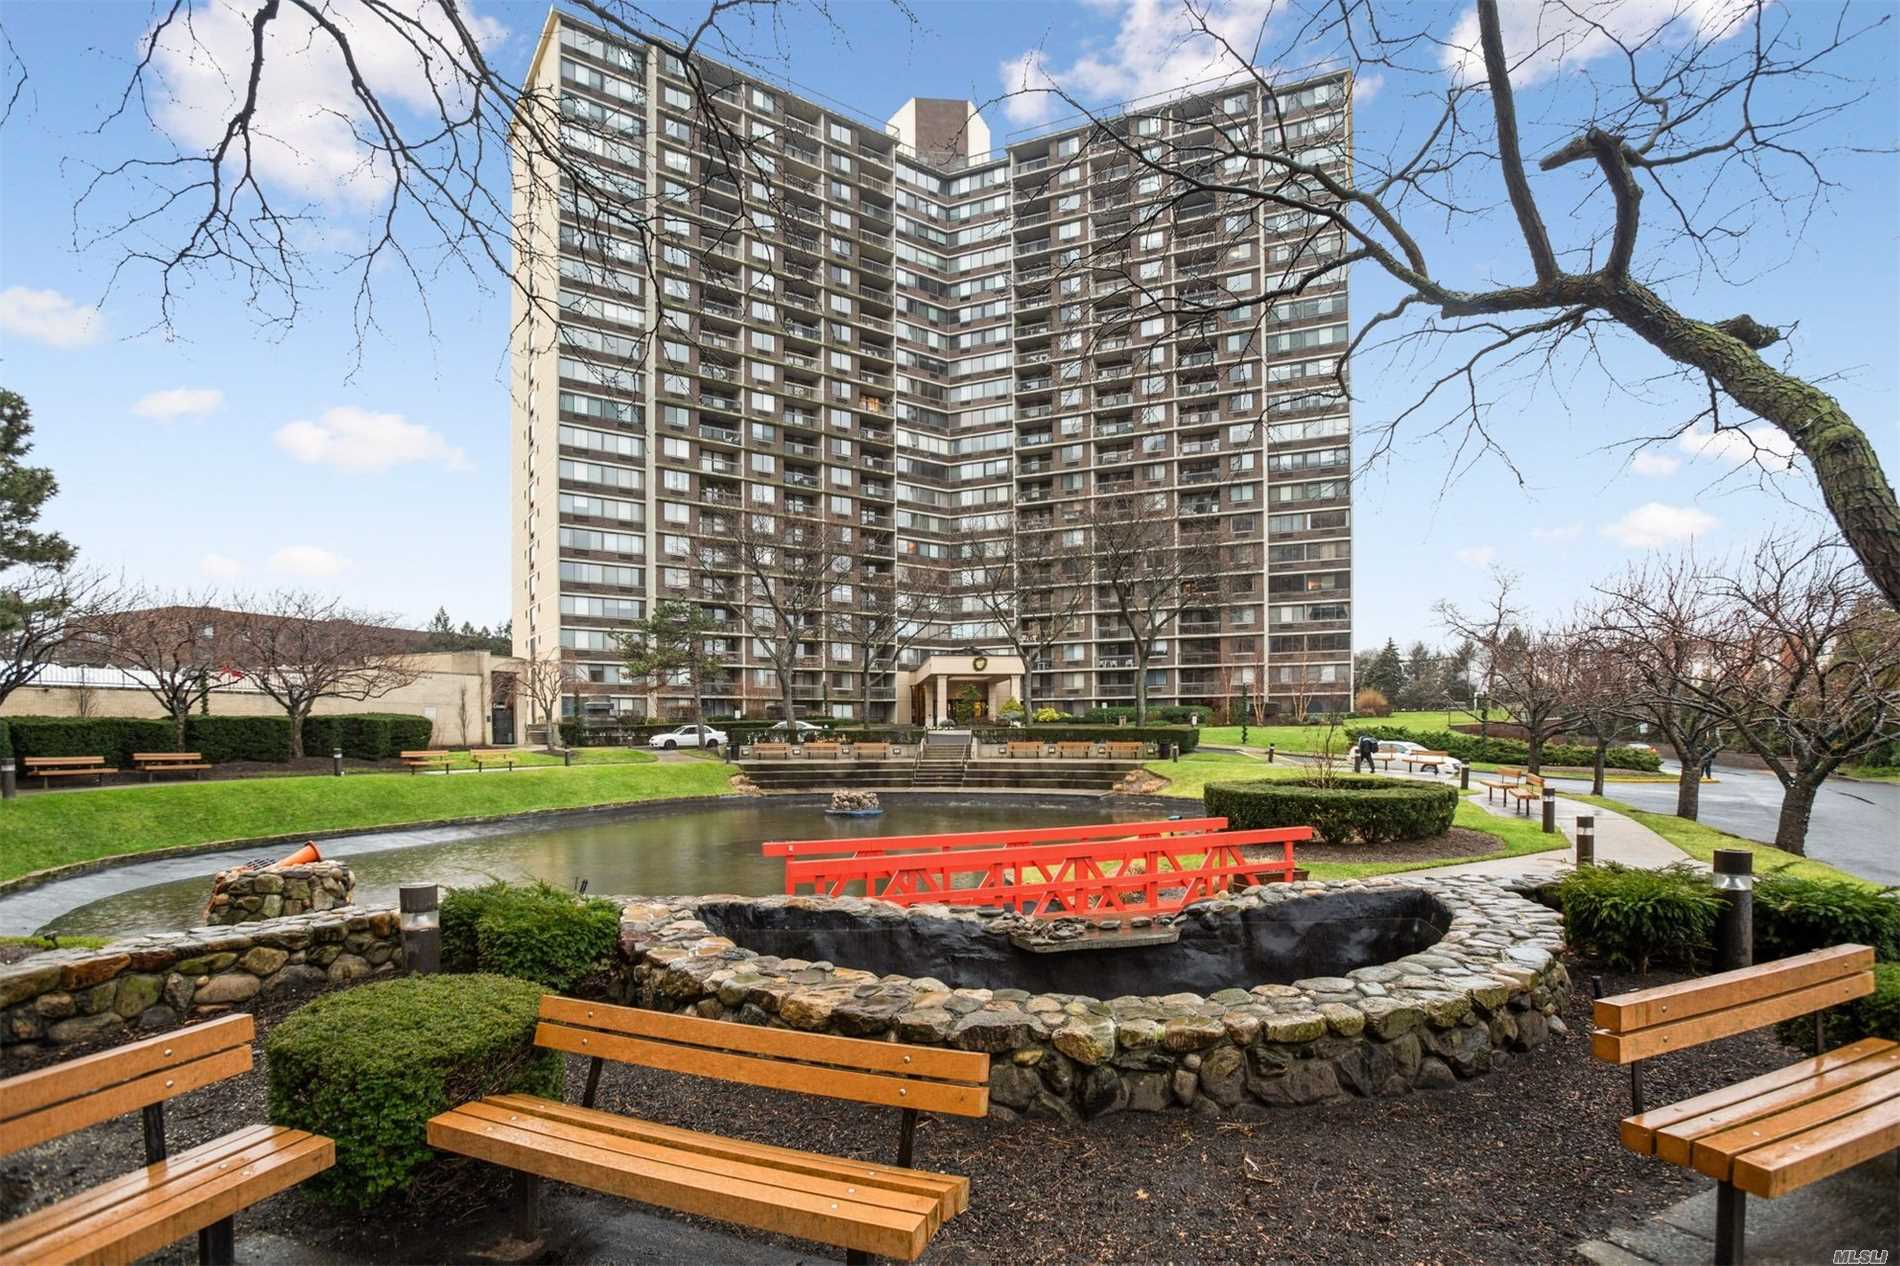 Fully Renovated Large 1 Bedroom Apartment With Breath Taking City And Water Views.  This Must See Apartment Is Located In The Luxuries Bay Club Gated Community, 24 Hour Security Staff, Doorman & Concierge Service, Fitness Center & Pool. Near Shopping Center, Transportation (Express Bus To Nyc) & 5 Minutes By Auto To L.I R.R. Special Features Includes Custom Remote Control Blinds, Hard Wood Floors, Custom Doors, Walk In Closets, New Energy Efficient Appliances, Granite Counter Top & Much More.